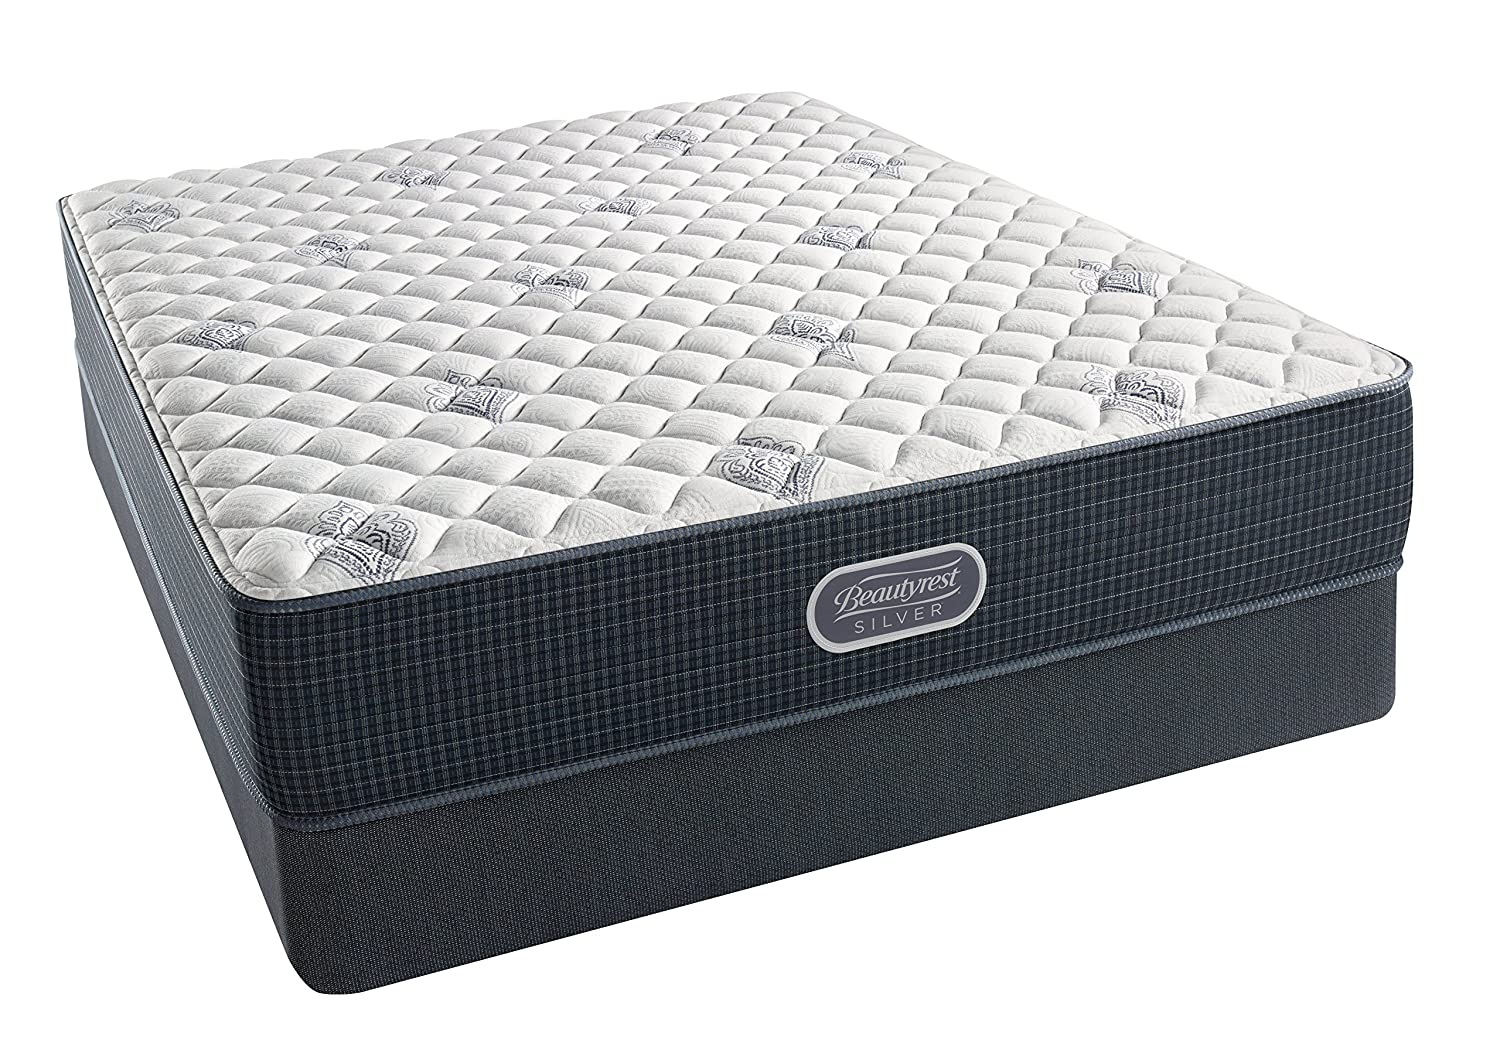 Amazon.com: Beautyrest Silver Extra Firm 600, King Innerspring Mattress: Kitchen & Dining